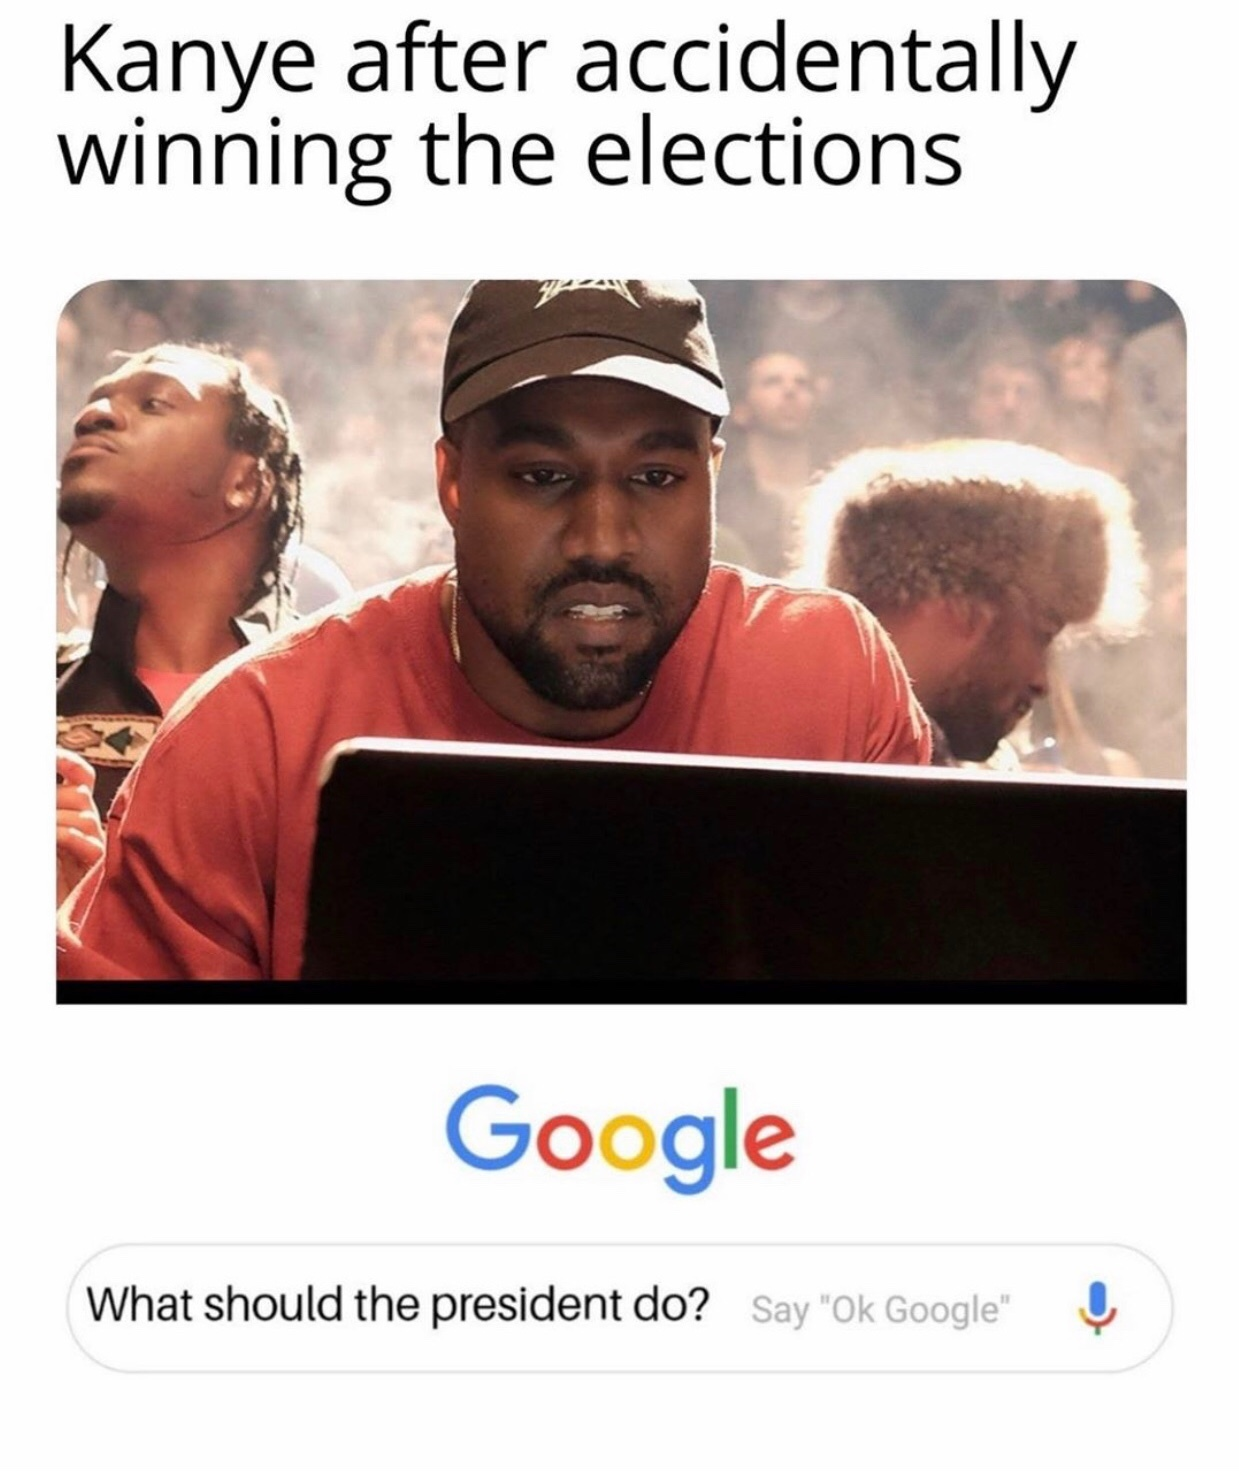 why is he even running for president lmaoo - meme